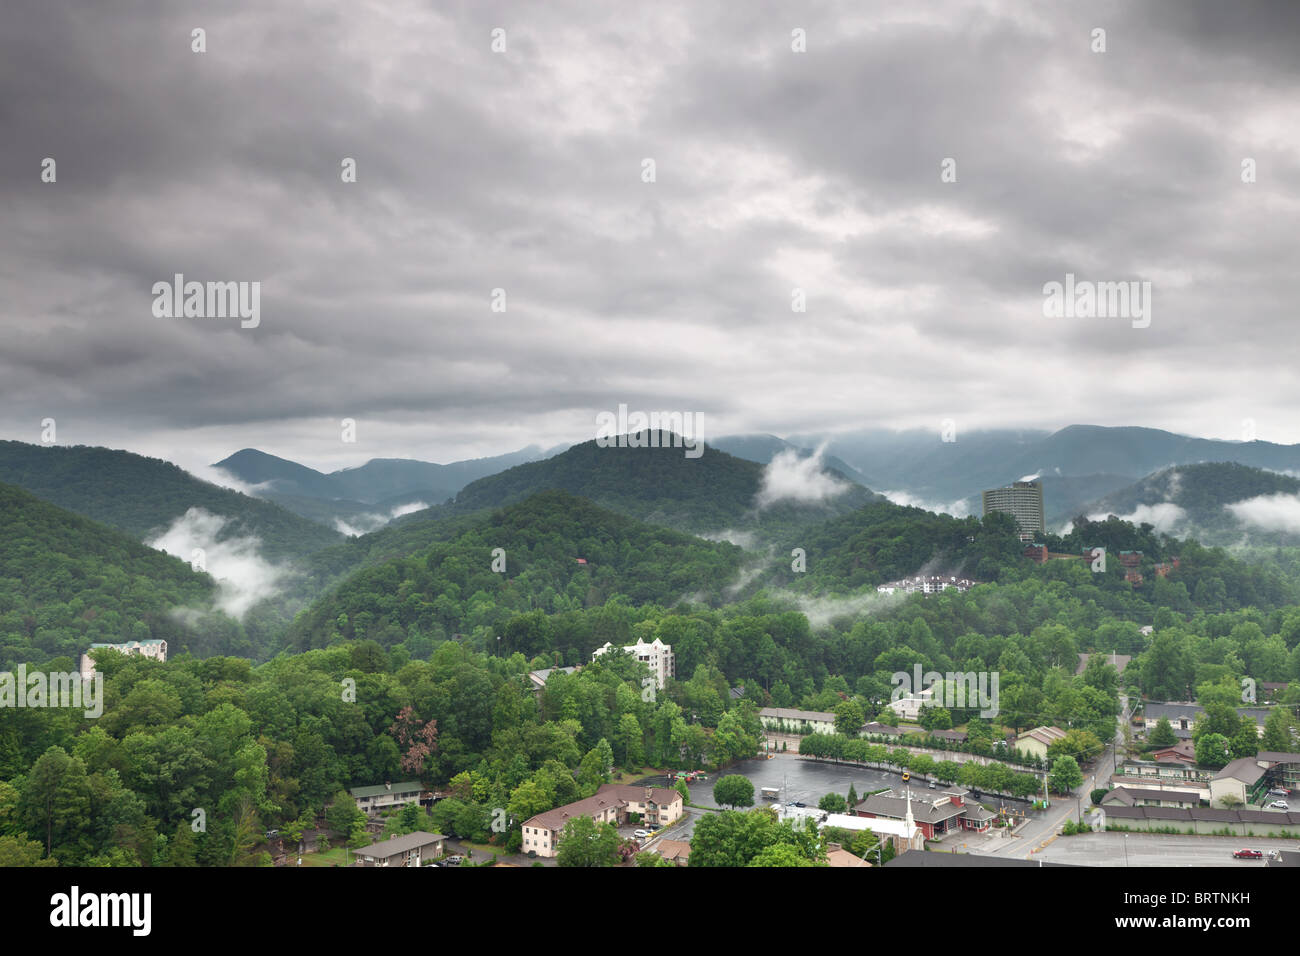 View of Gatlinburg city. Great Smoky Mountains National Park, Tennessee, USA - Stock Image